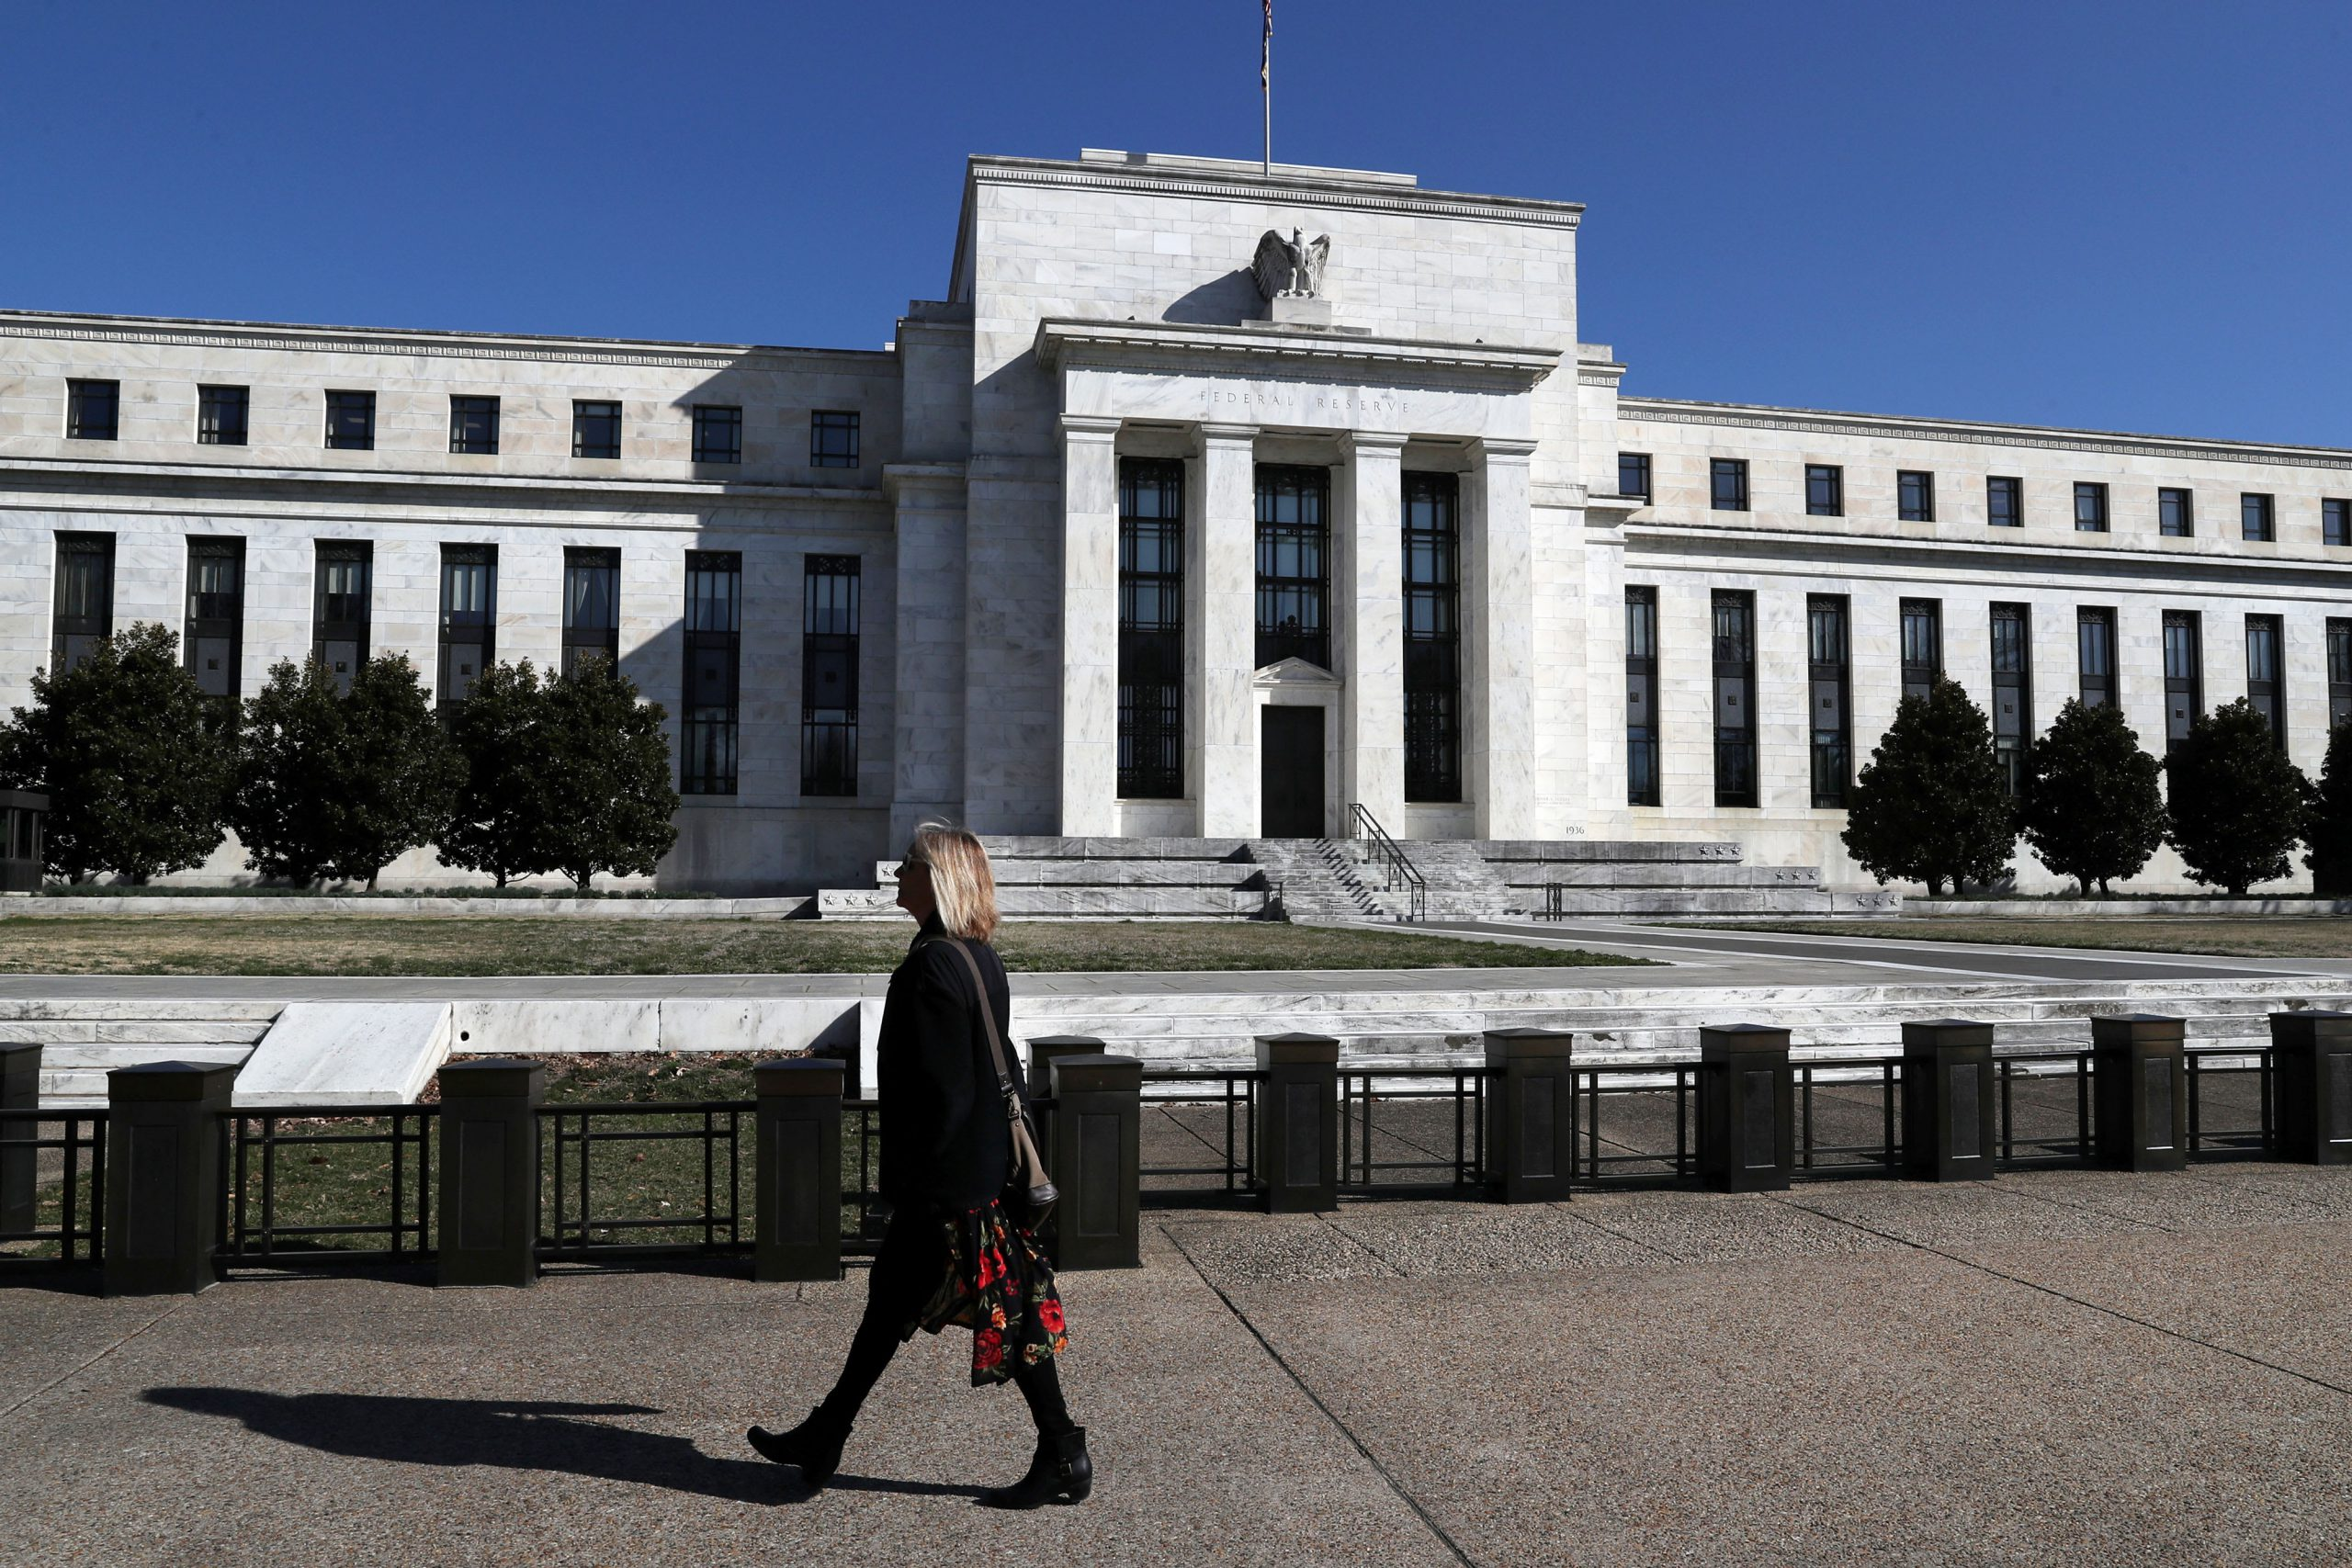 The Fed is expanding the scope of its Main Street lending to include bigger businesses